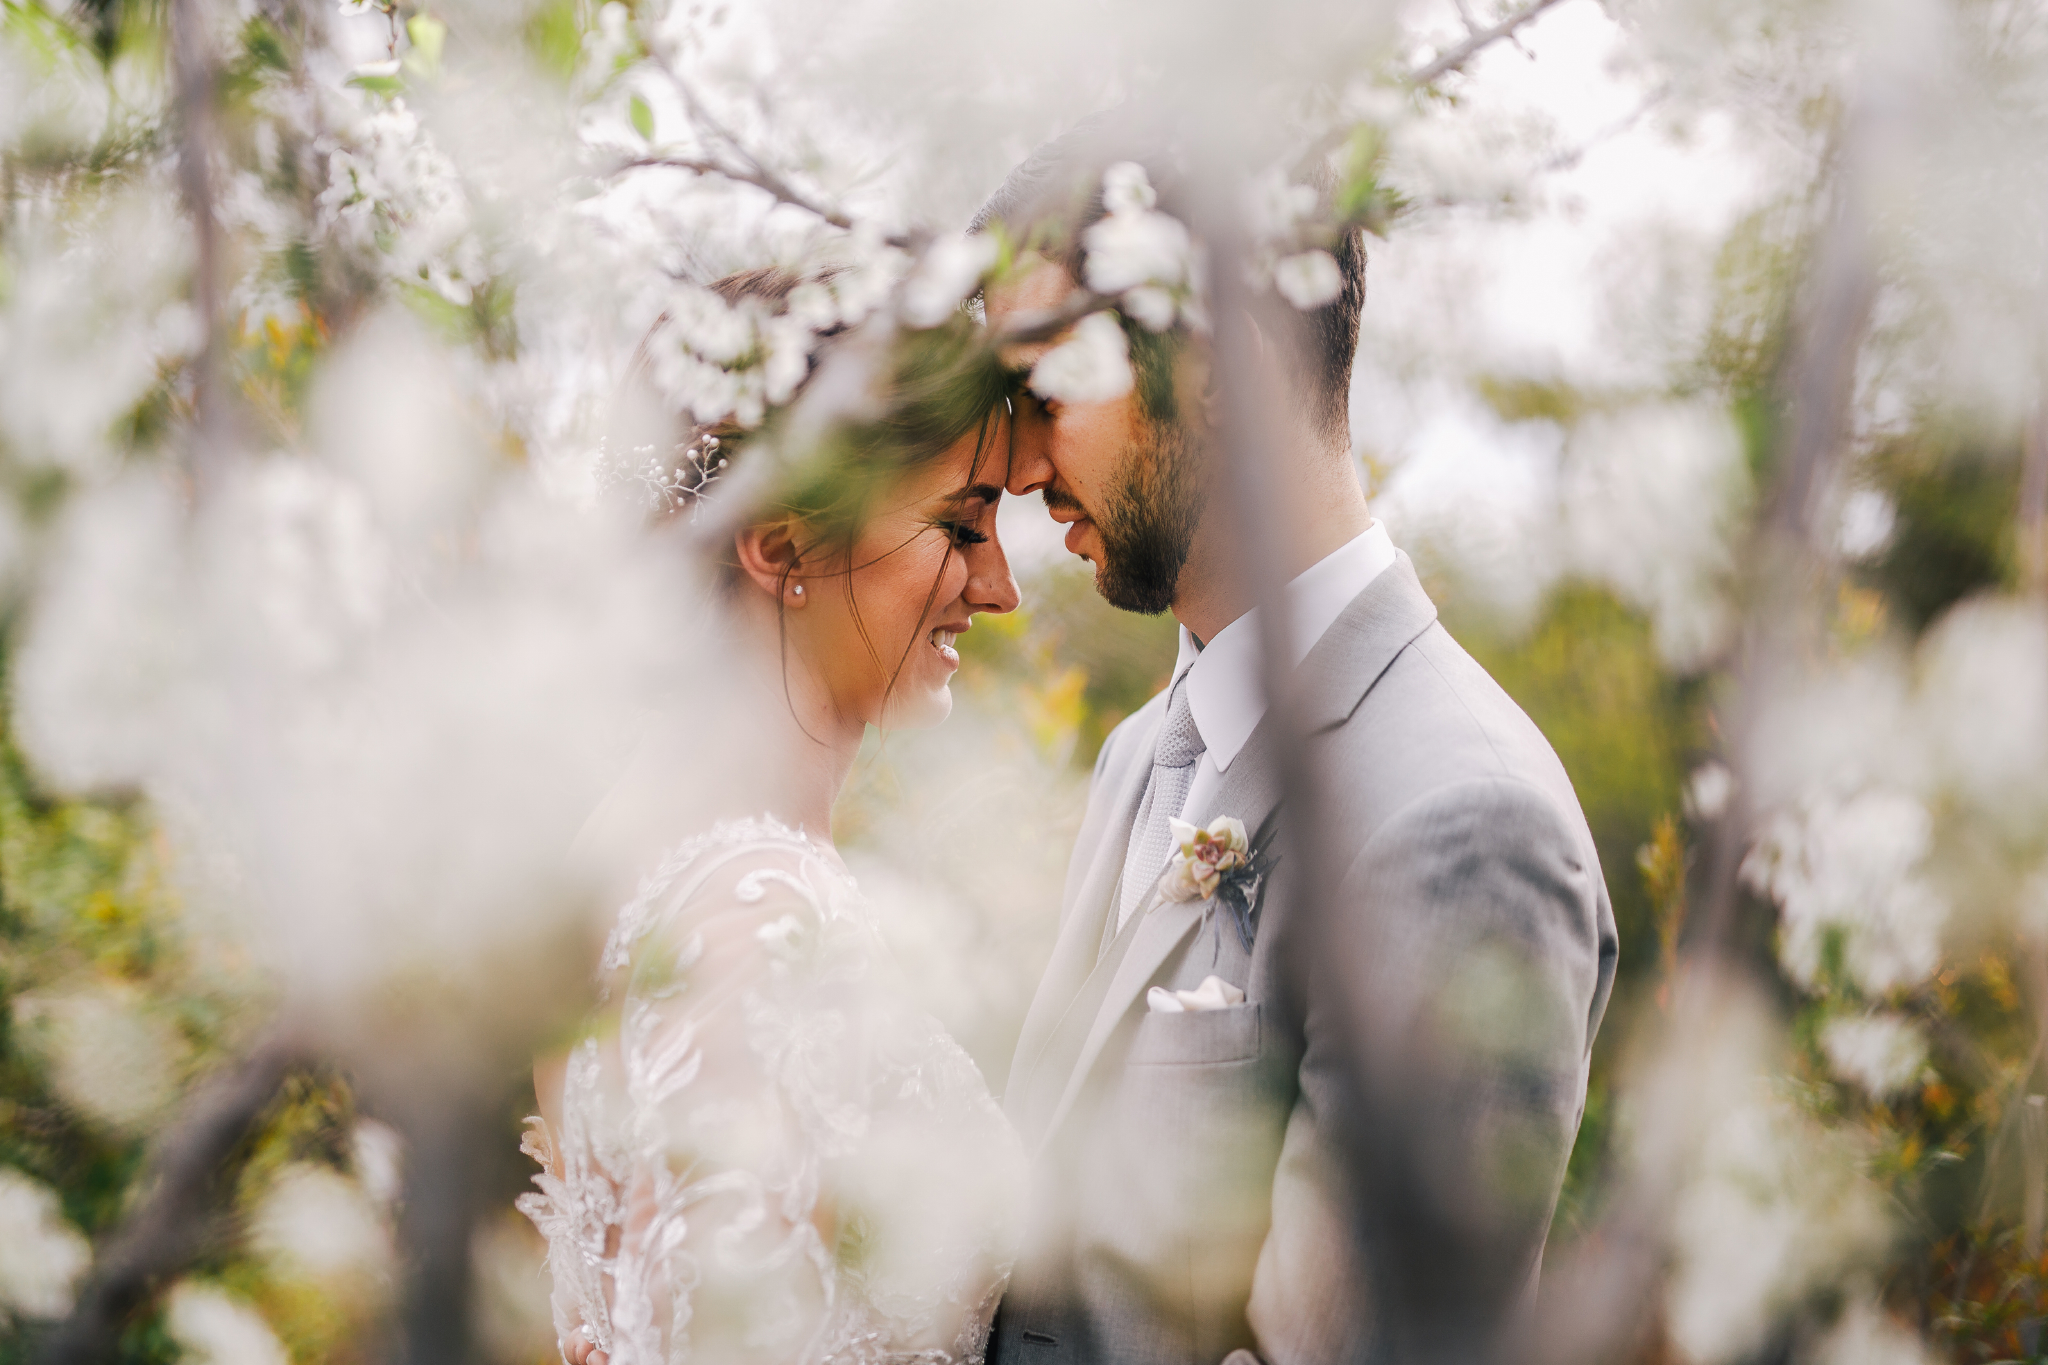 san diego wedding   photographer | man in gray suit standing close in front of woman in white   dress seen through branches with flowers